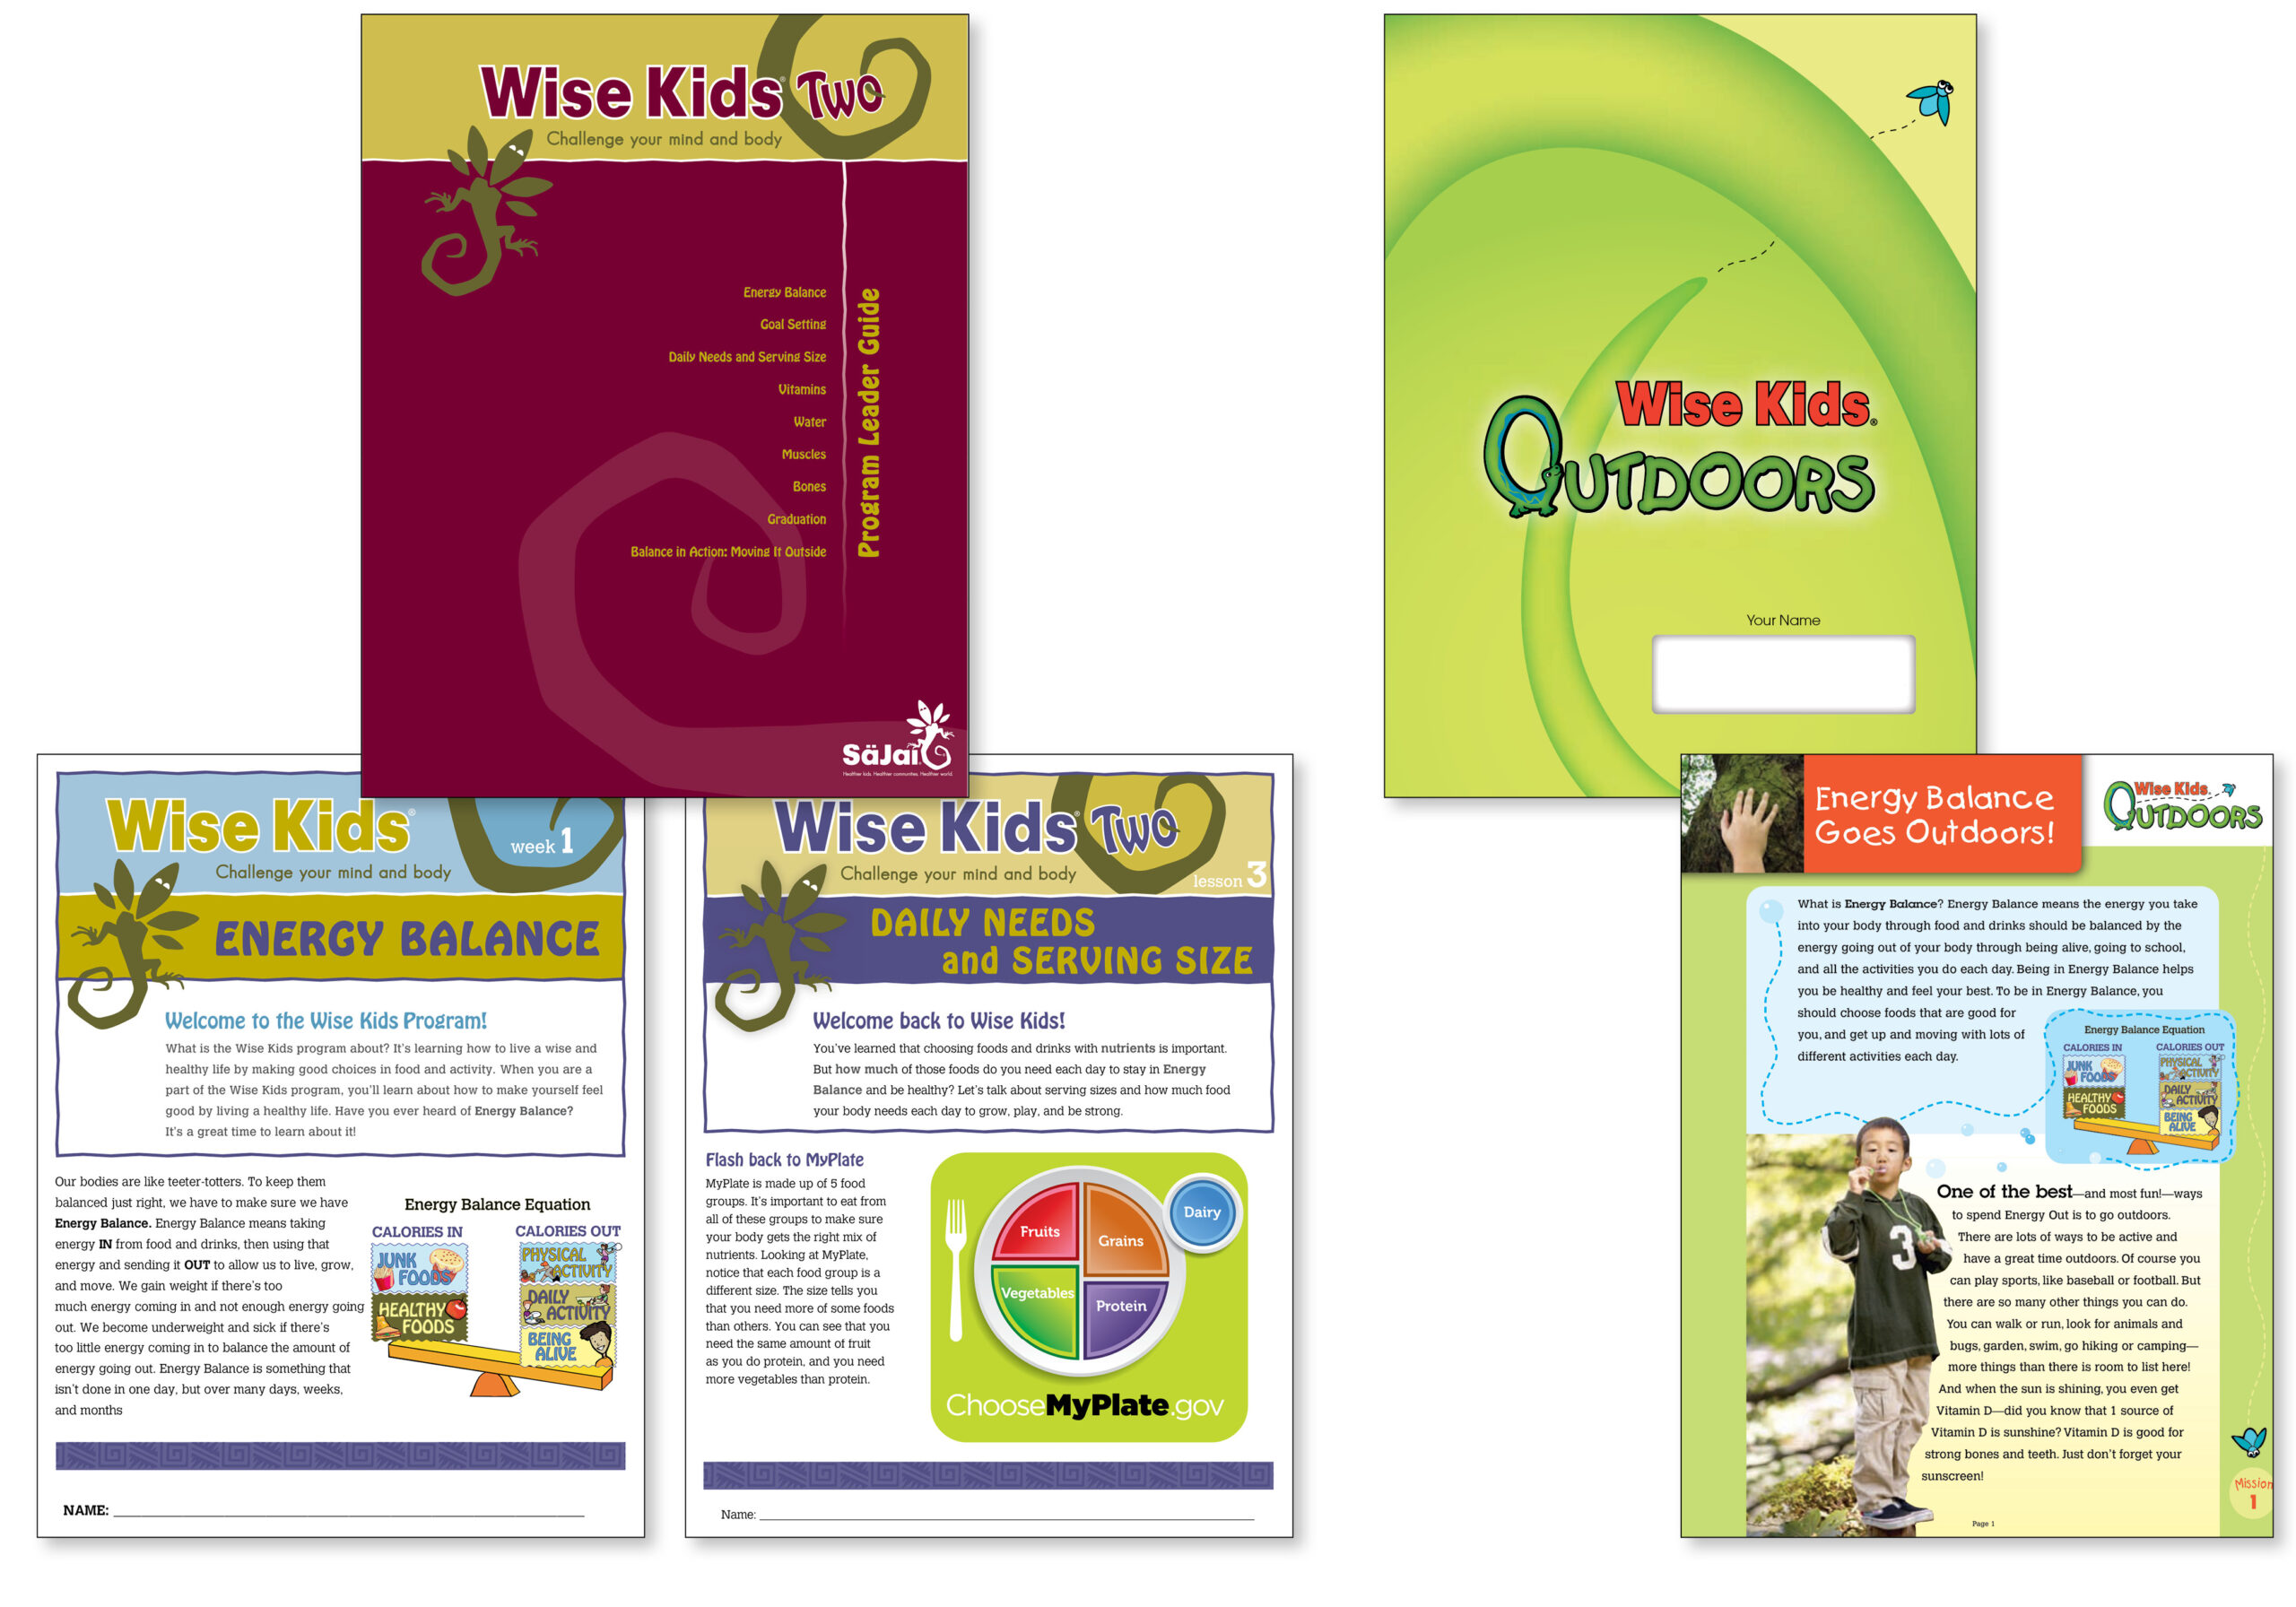 Image of curriculum projects created for Sajai Foundation, including Wise Kids series 1 and 2, and Wise Kids Outdoors.